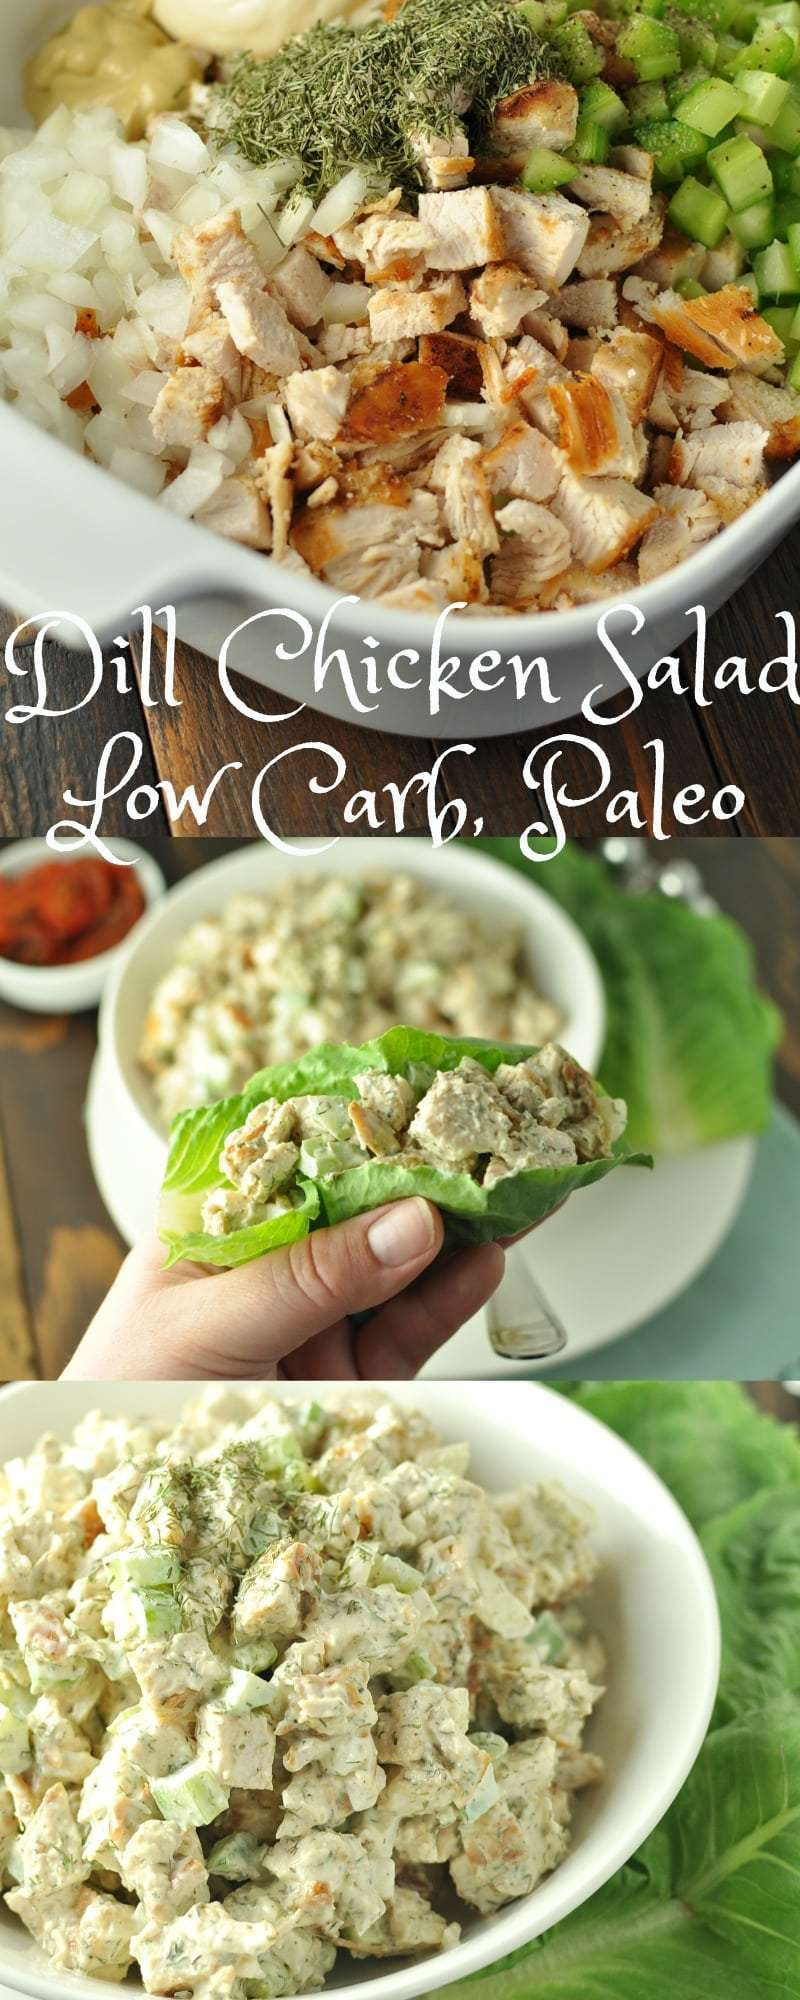 Low Carb Chicken Salad  Dill Chicken Salad Low Carb Paleo